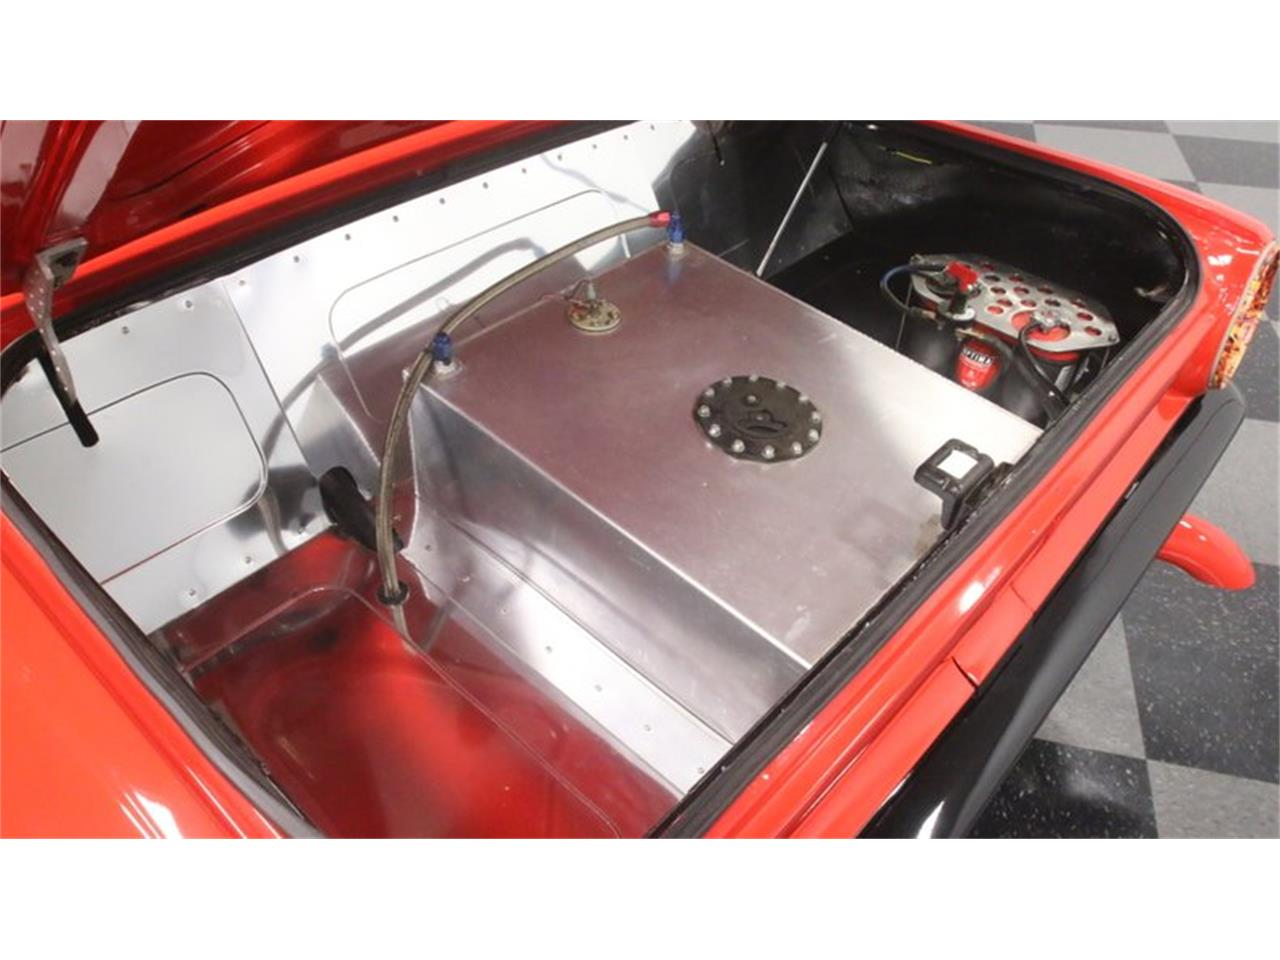 Large Picture of Classic '64 Ford Fairlane located in Lithia Springs Georgia - $43,995.00 Offered by Streetside Classics - Atlanta - OZCM